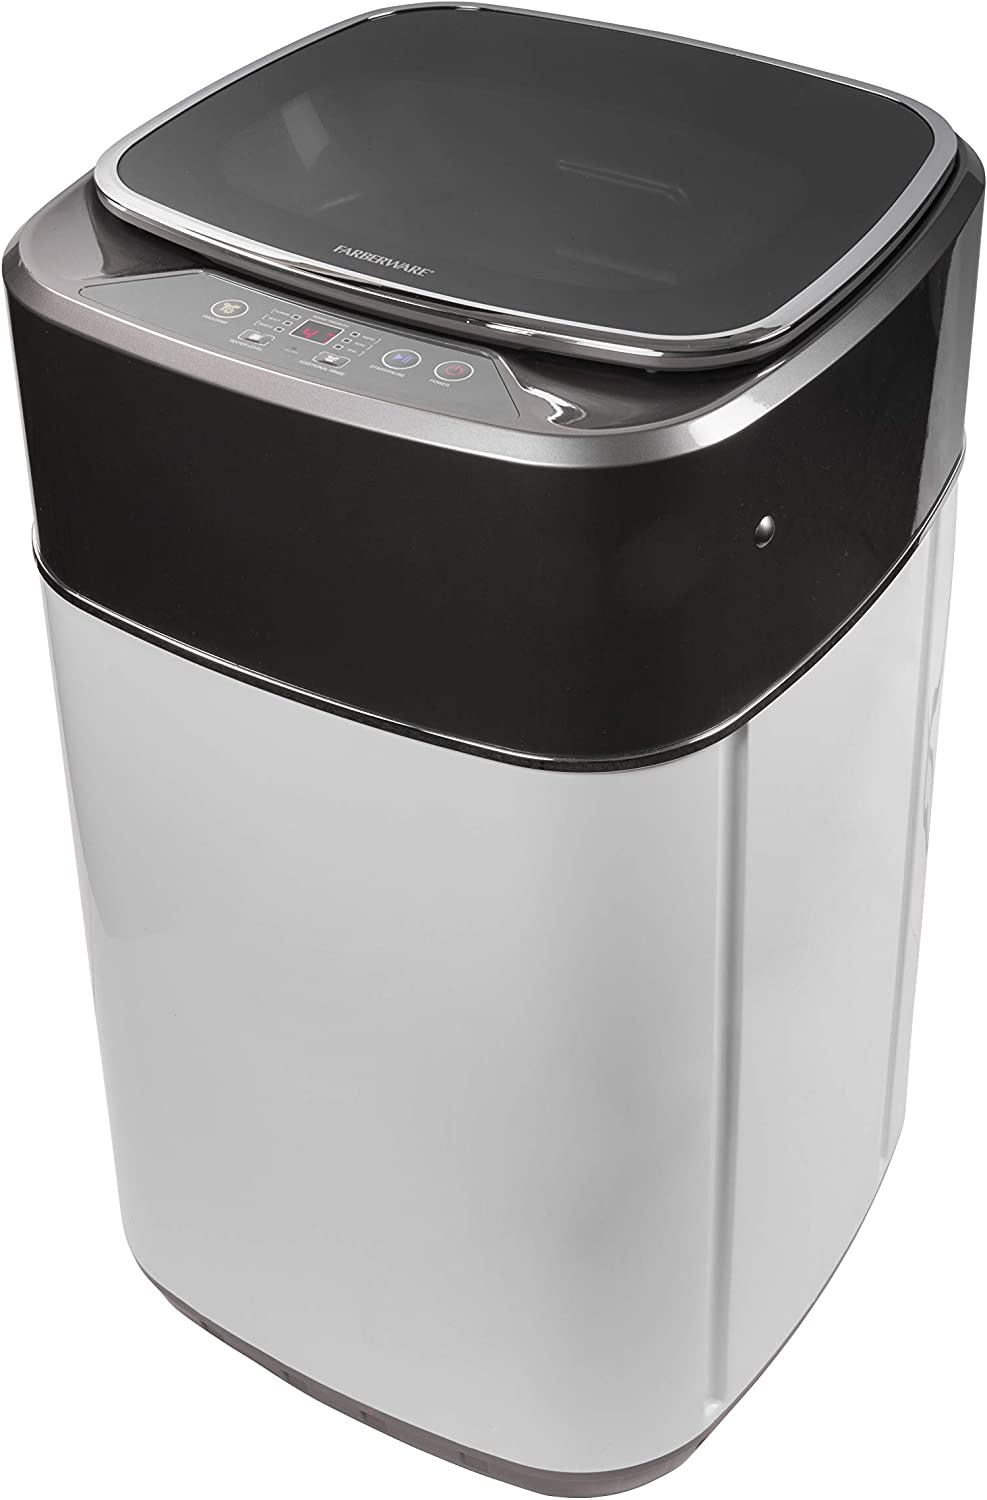 Farberware ProfessionalFCW10BSCWHA 1.0 Cu. Ft. PortableClothes Washer with 7-lb Load Capacity, Silver & Chrome